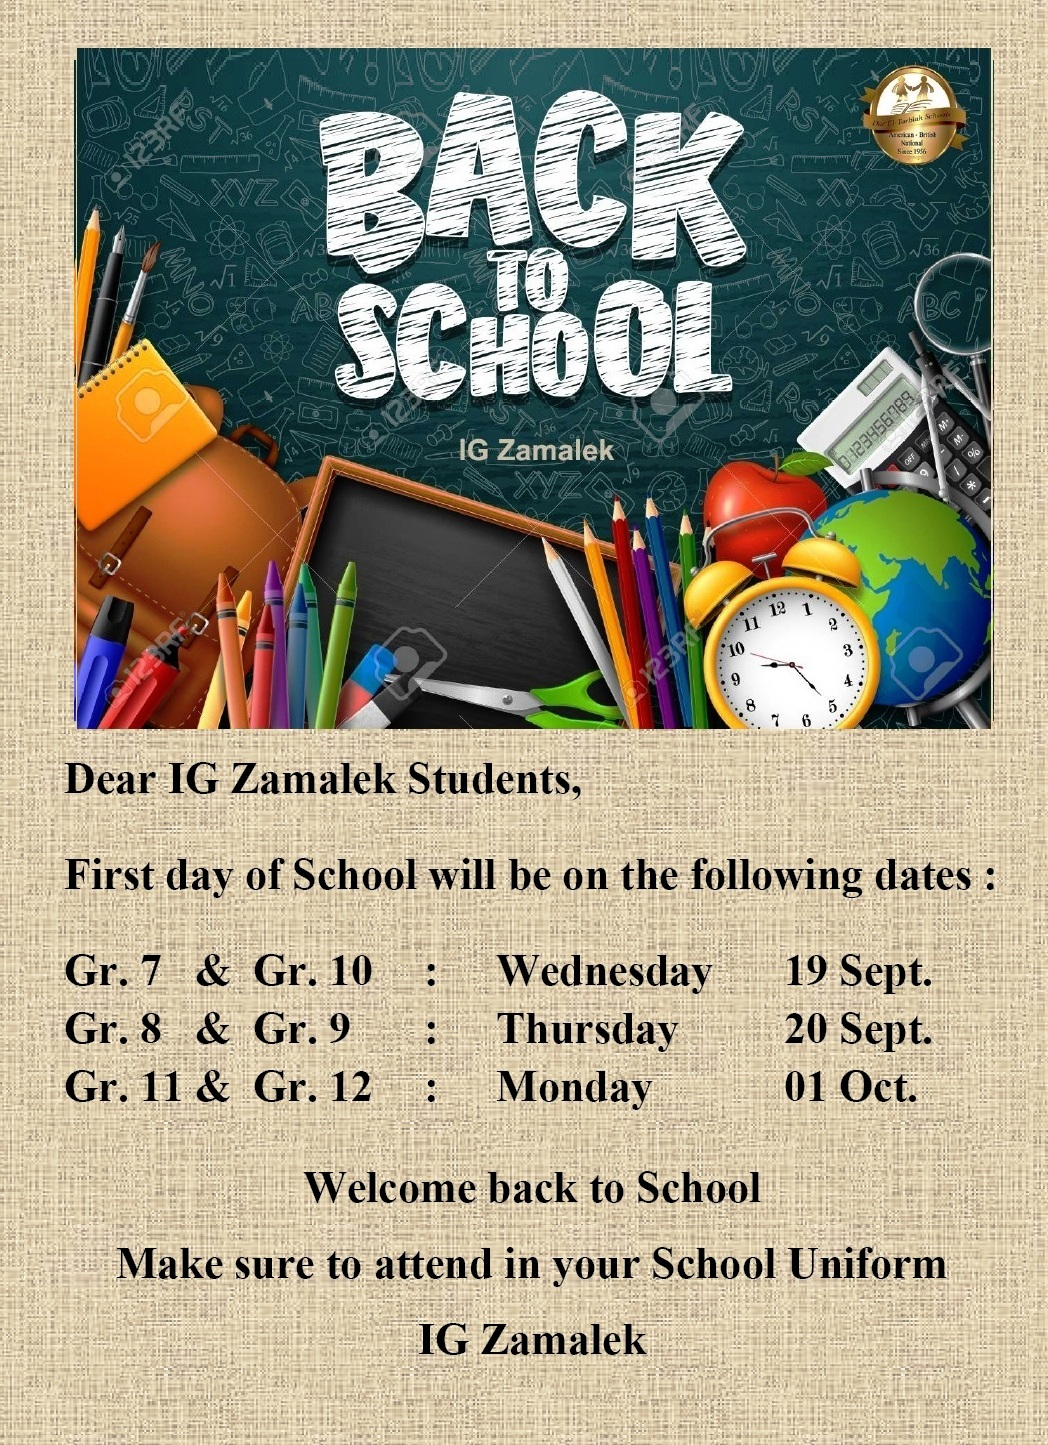 IG Zamalek : Back to School 2019